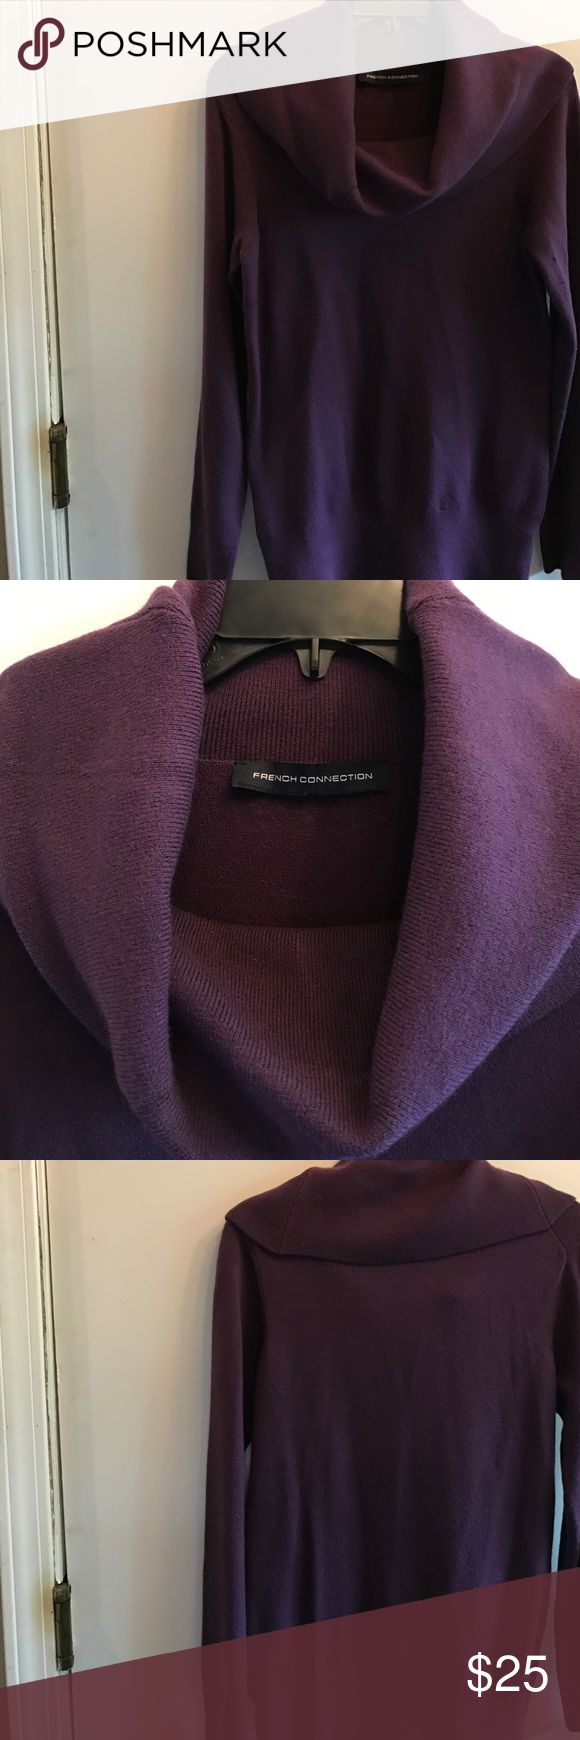 "FRENCH Connection Deep purple cowl neck sweater FRENCH Connection Deep purple cowl neck sweater . Super soft and warm. Sz  Lg 34"" bust measurement. purple is flattering for any skin tone. Great with leggings. Jeans. Boots, flats or heels. acrylic blend Machine washable. Excellent condition worn once. Check my closet for other similar items. No trades. French Connection Sweaters Cowl & Turtlenecks"